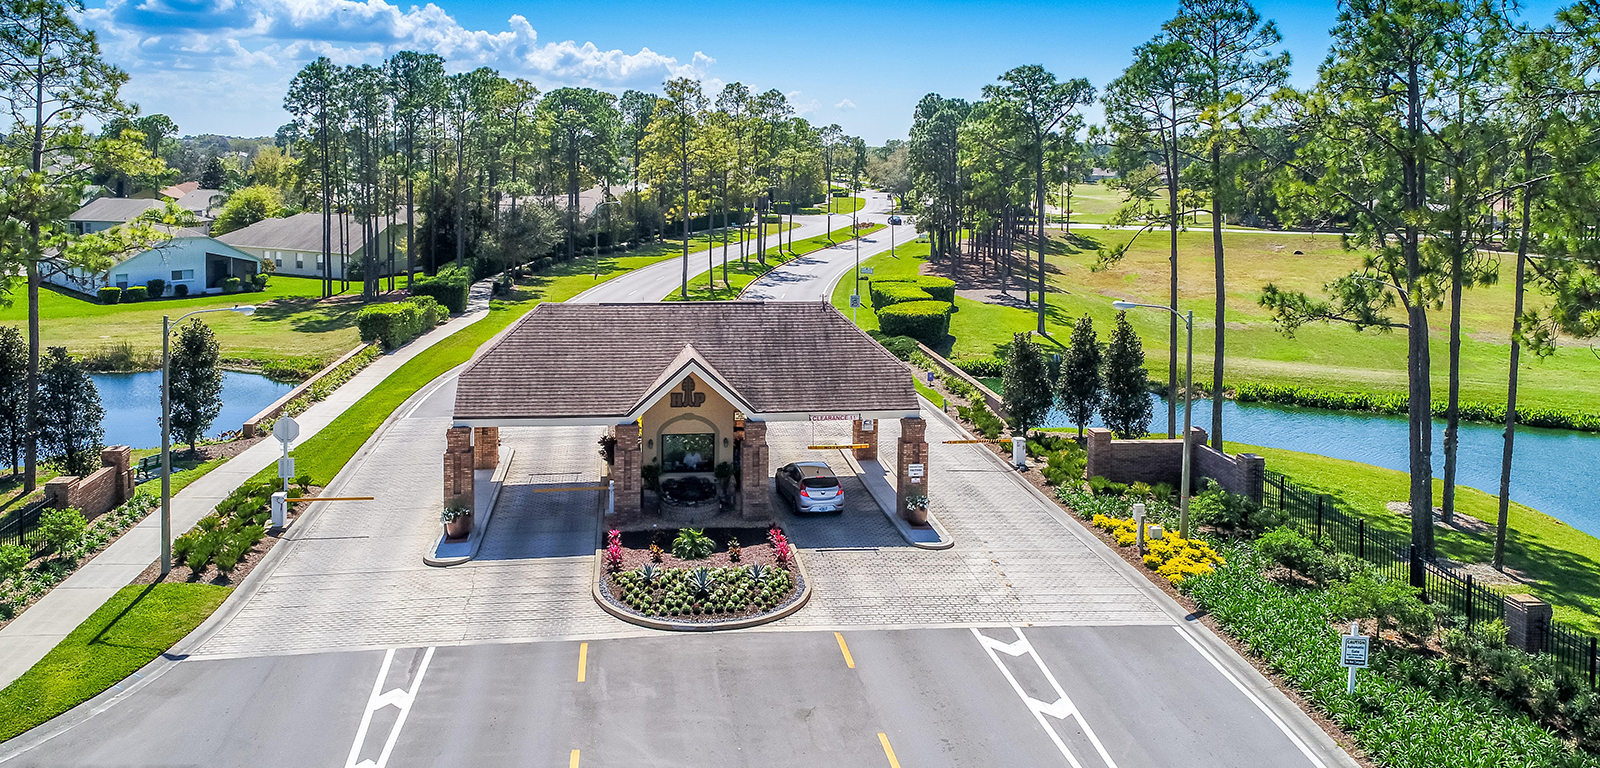 Heritage Pines - Country Club Entrance